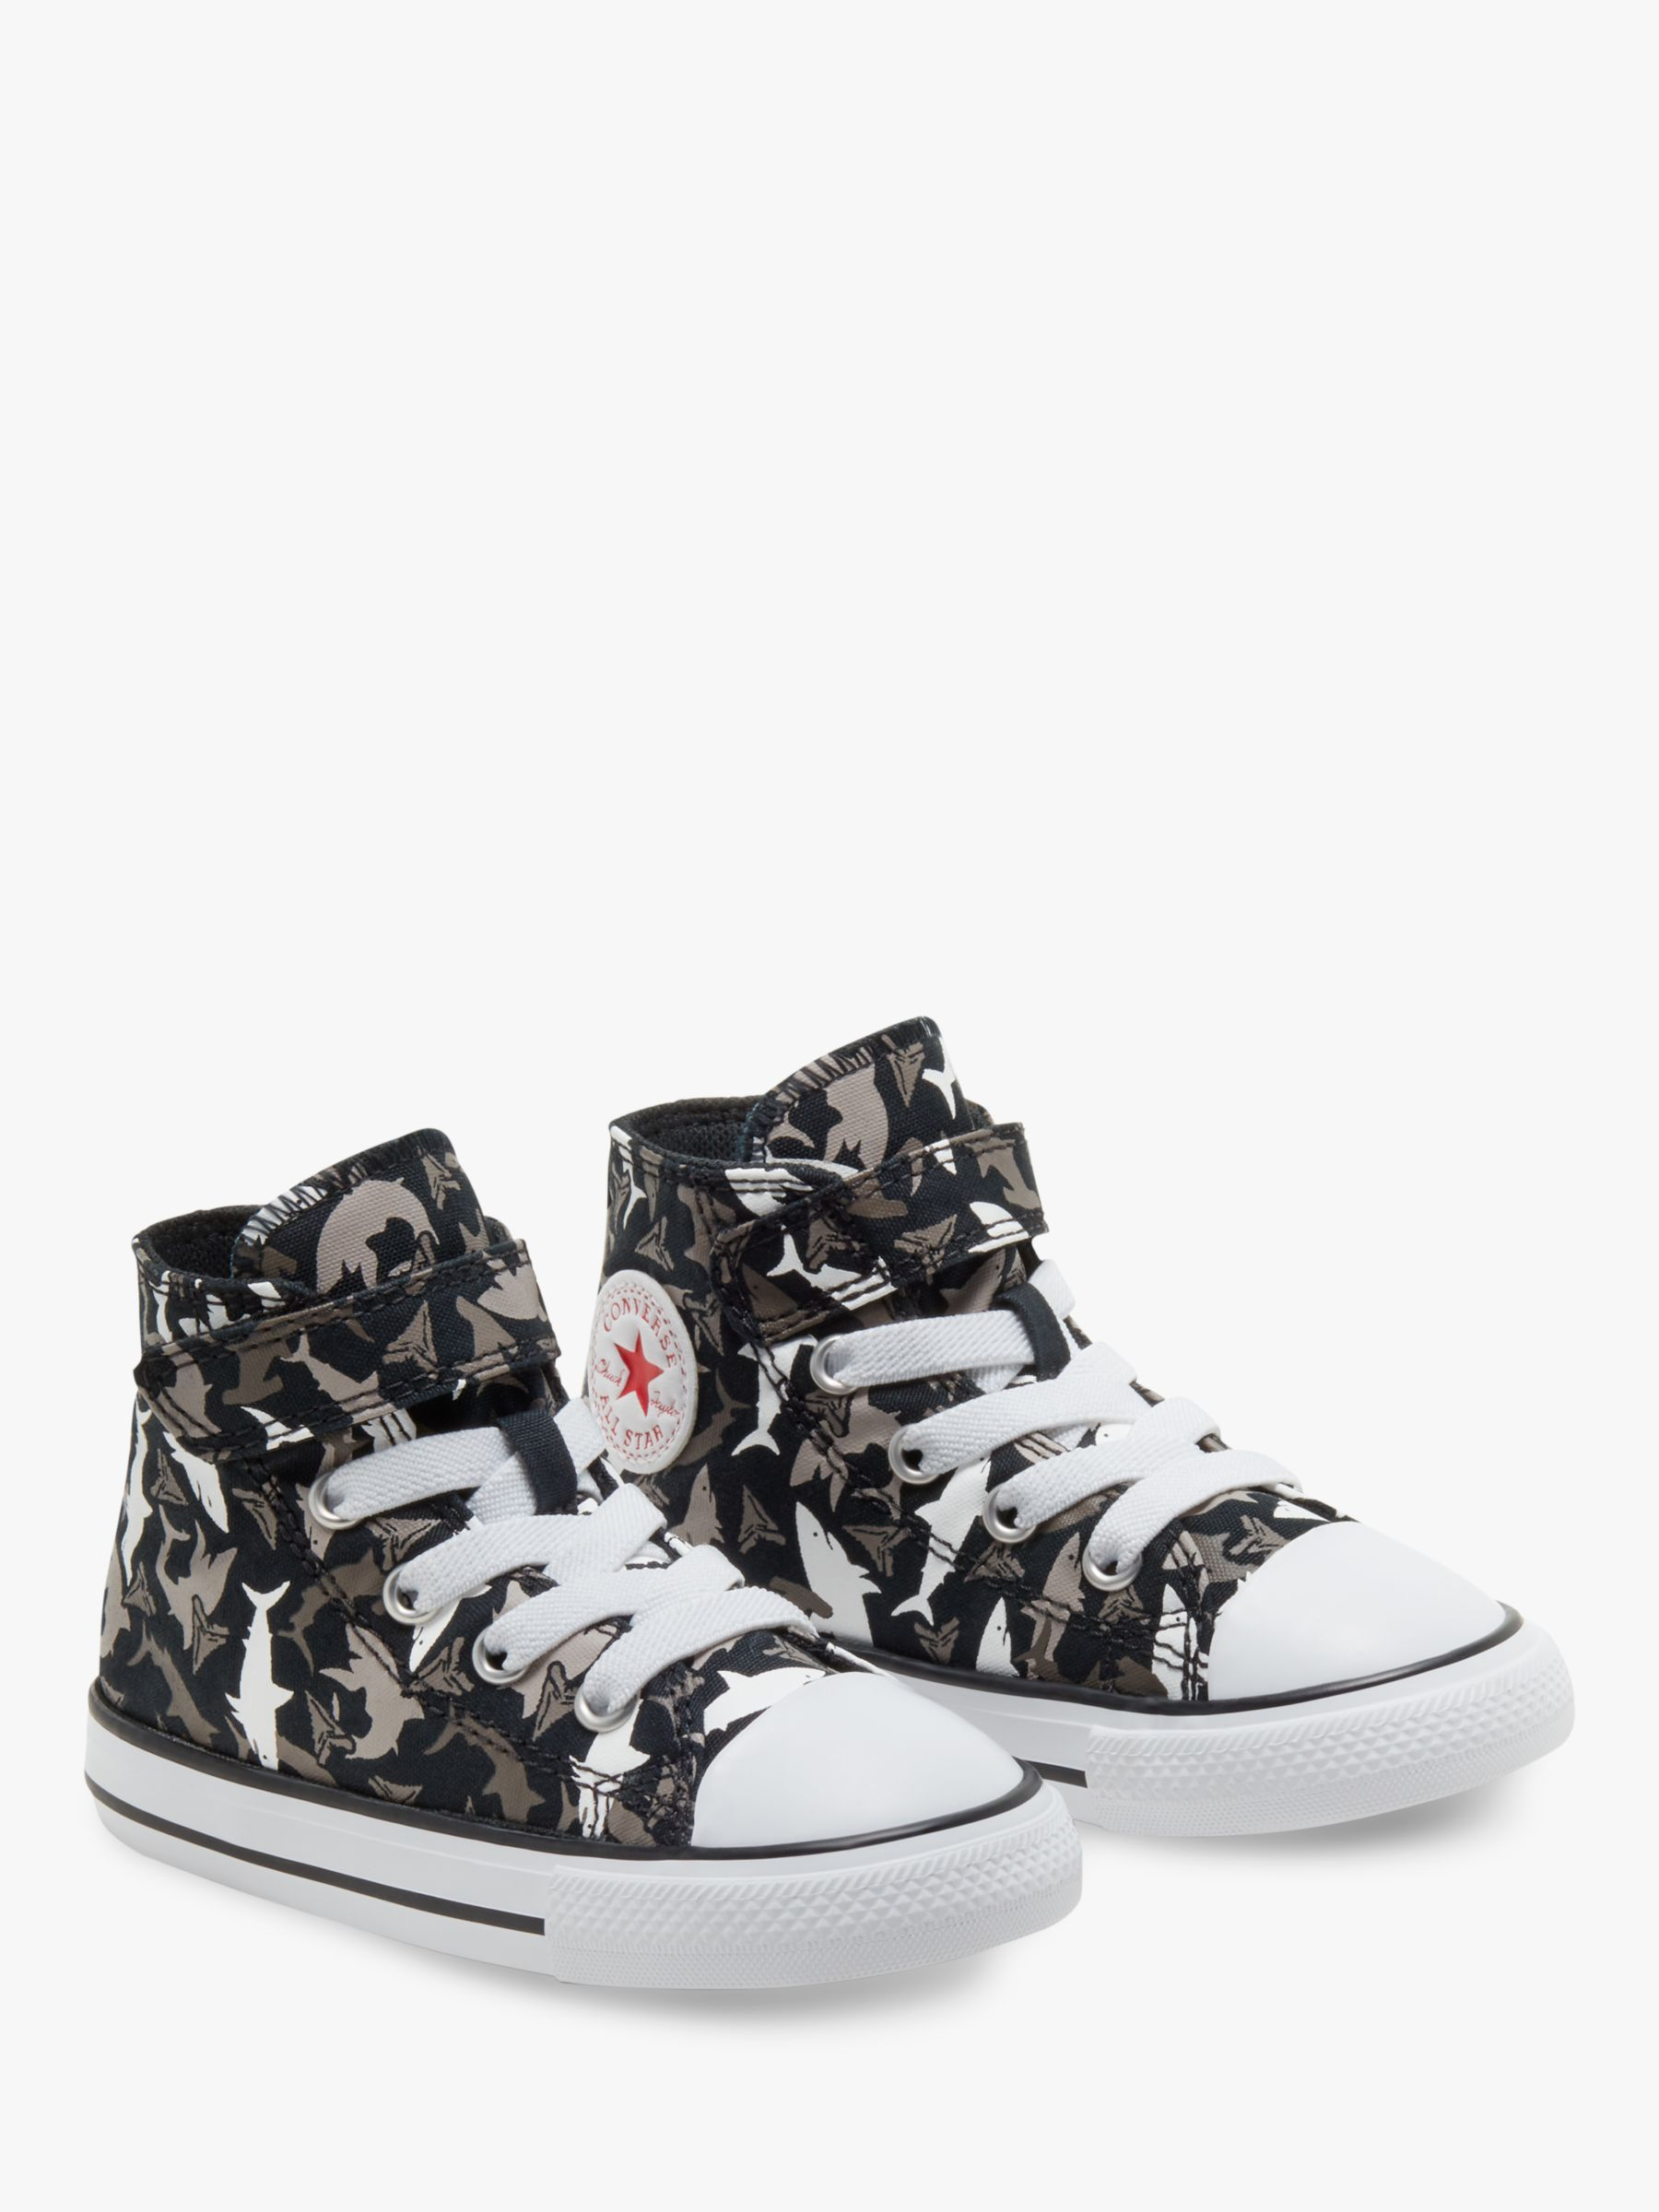 black high top converse junior